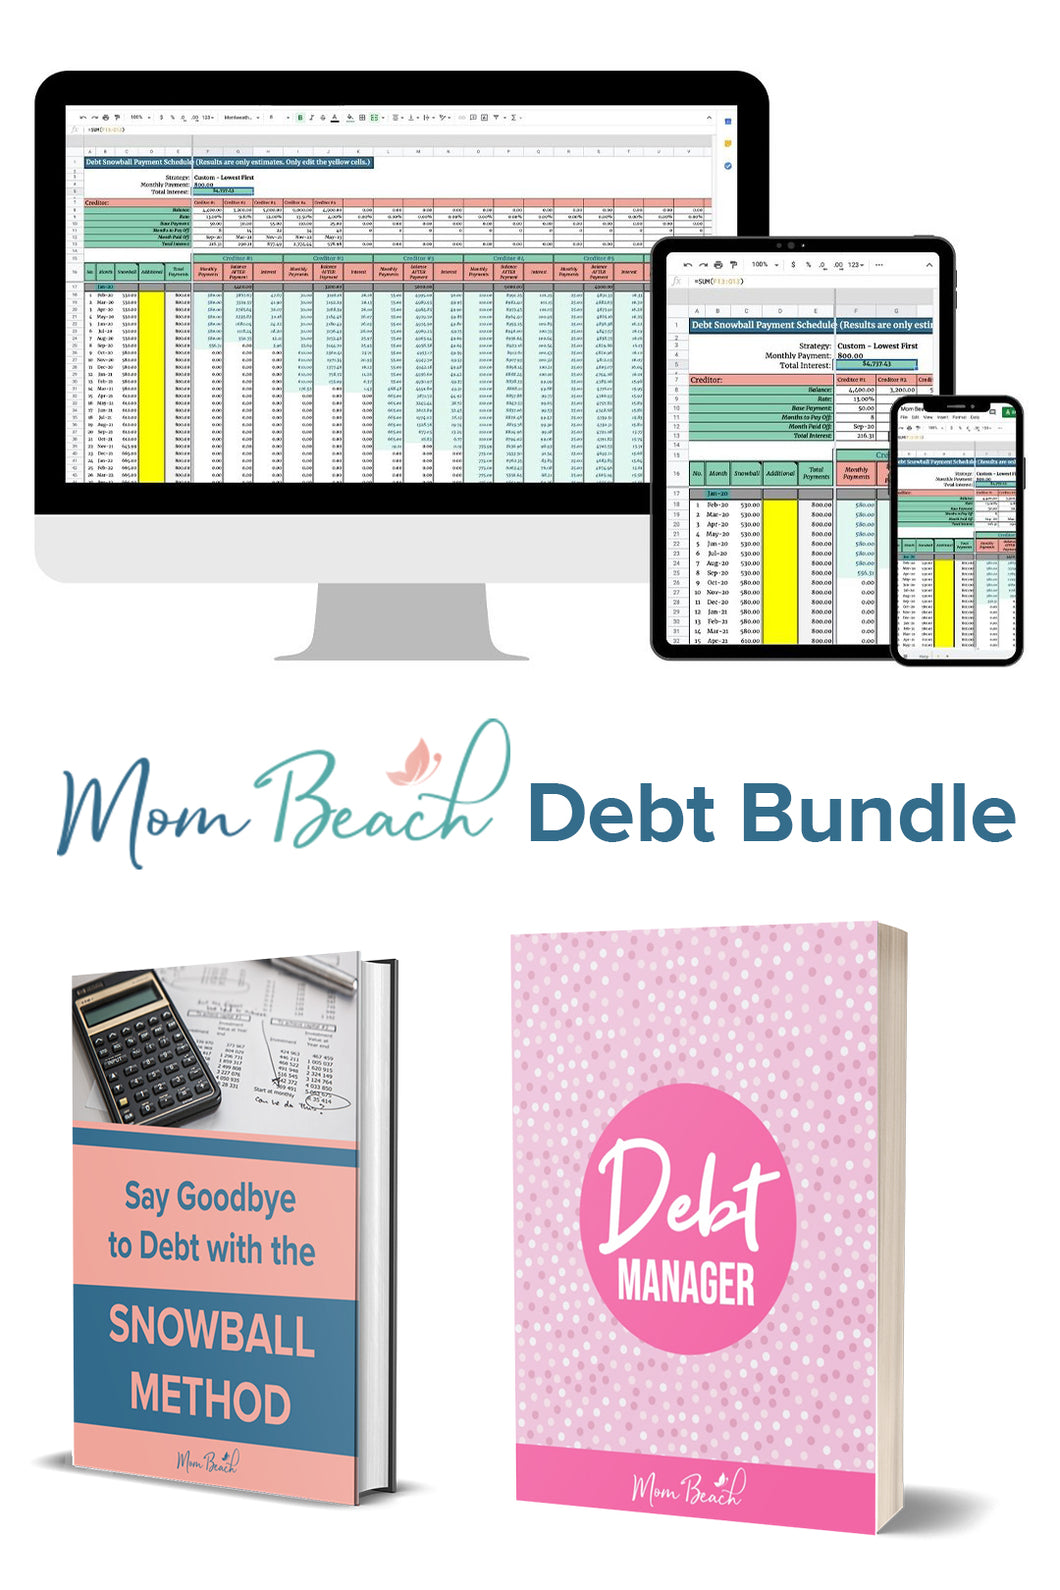 Mom Beach Debt Bundle